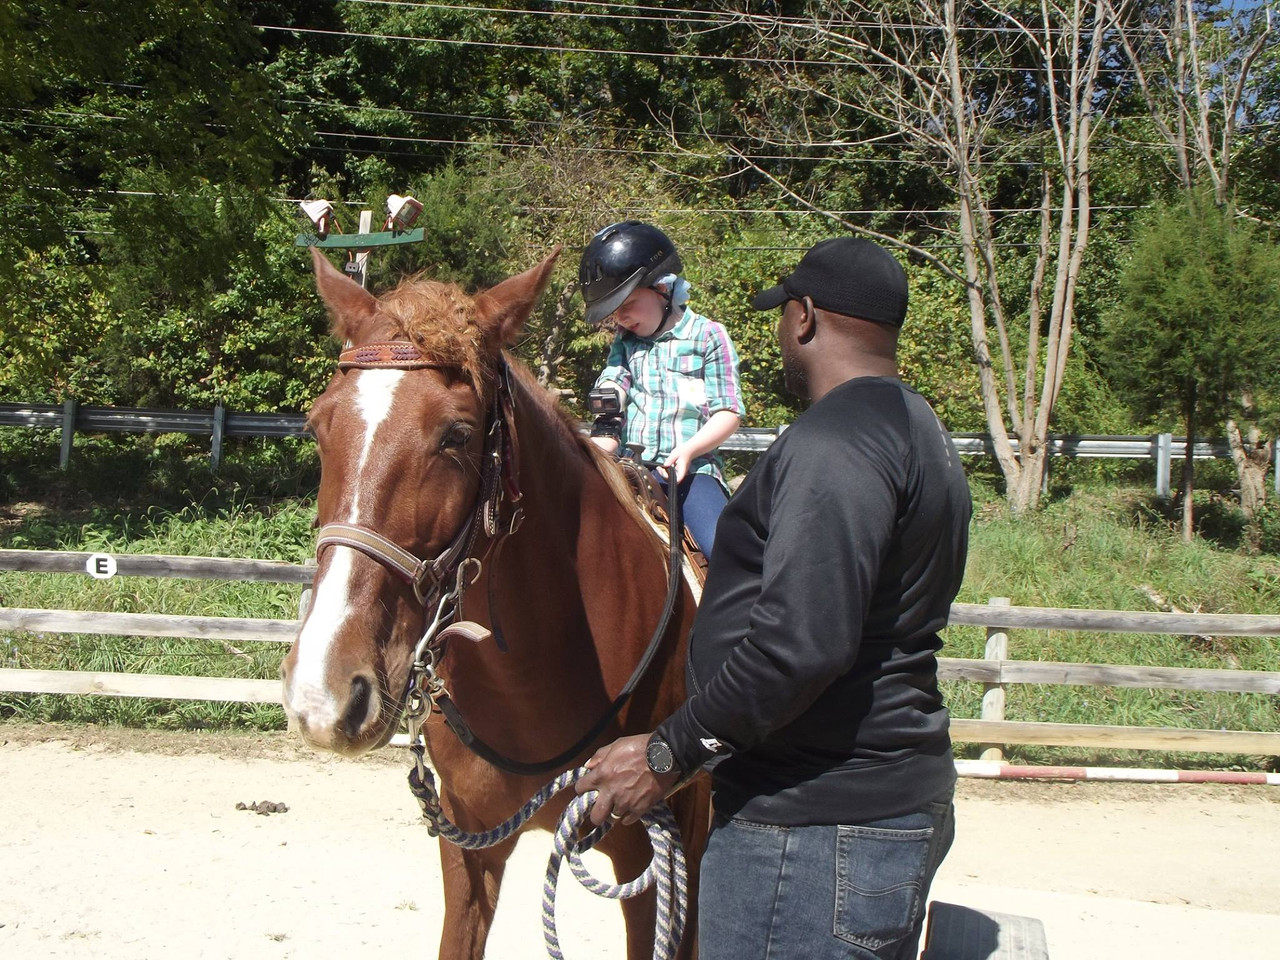 Baltimore's Horseback Riding Program